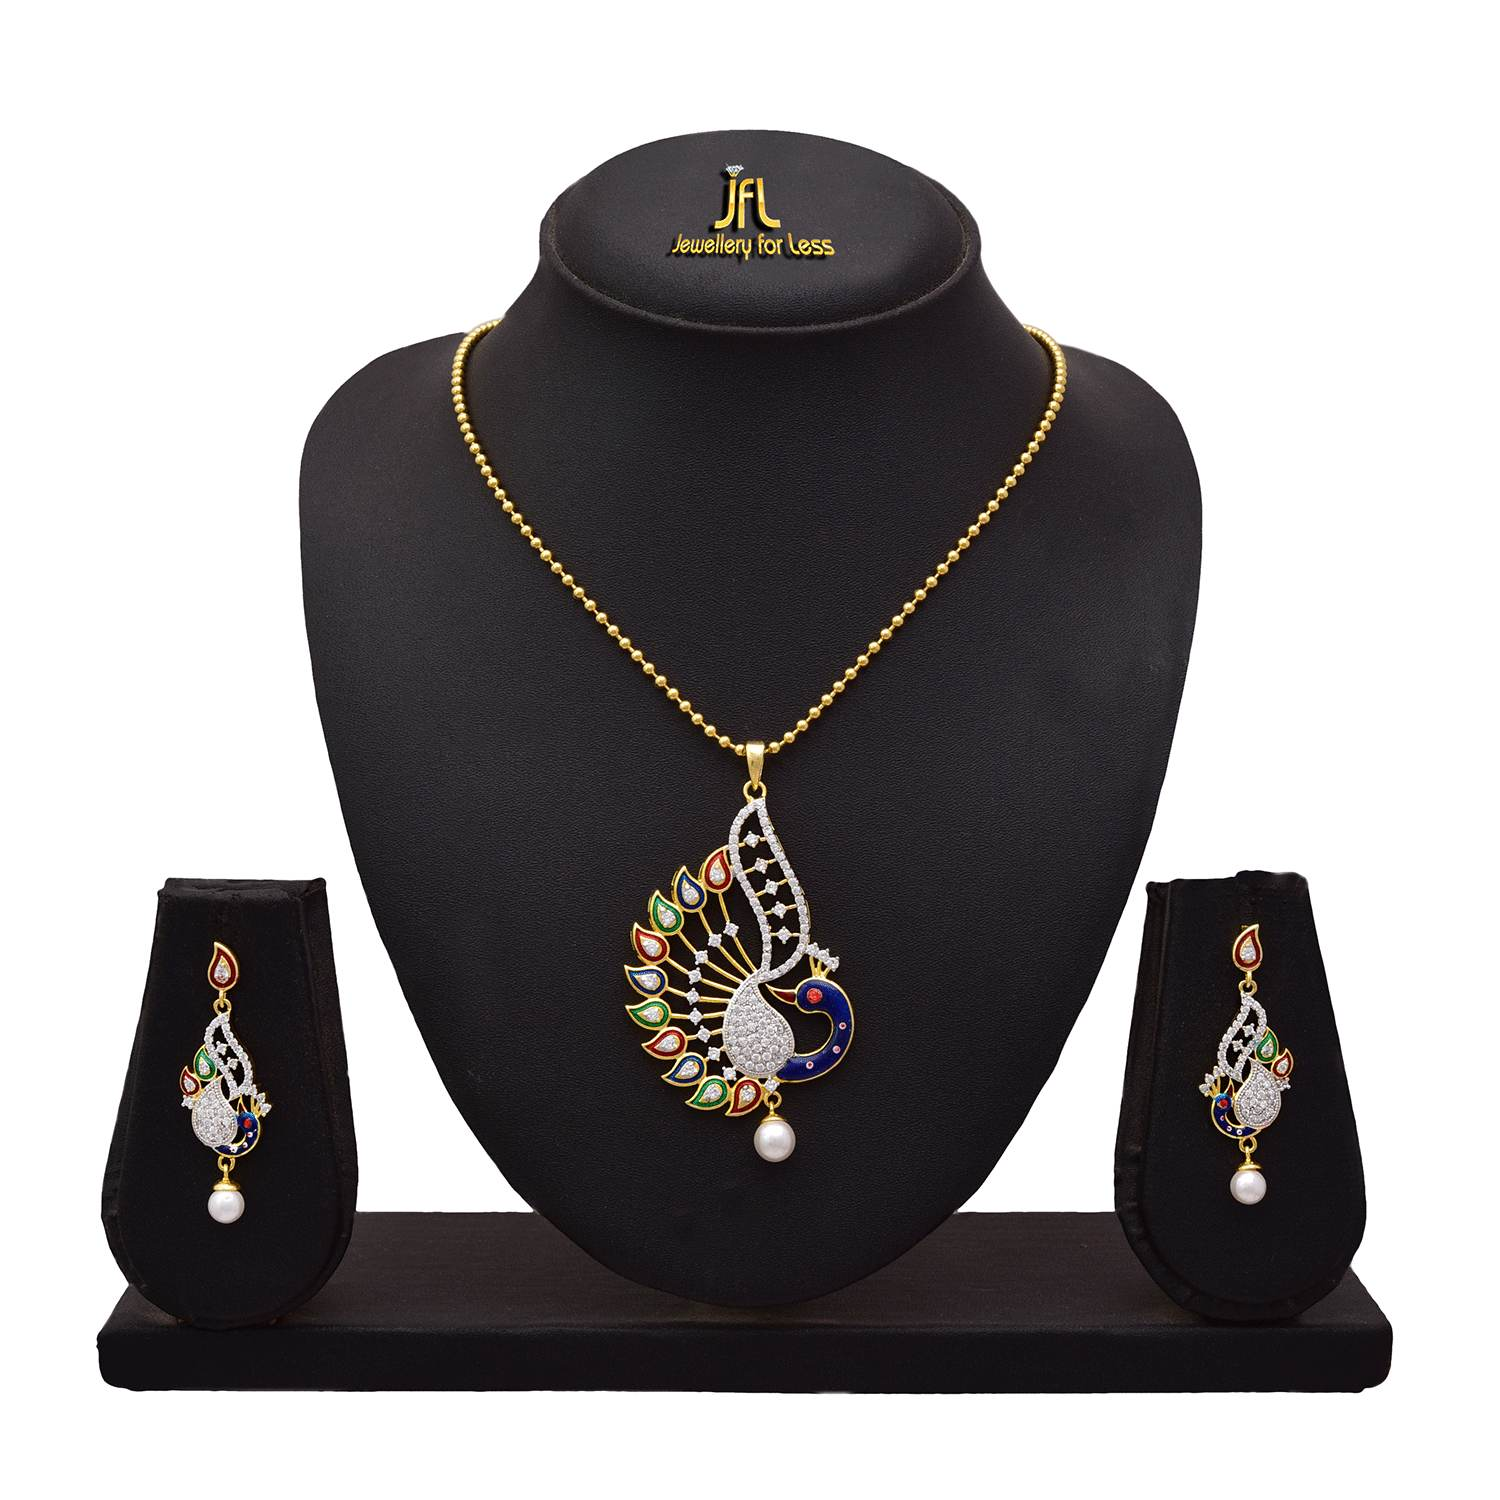 JFL - Traditional Ethnic One Gram Gold Plated Cz American Diamond With Meenakari Peacock Designer Pendant Set for Women.